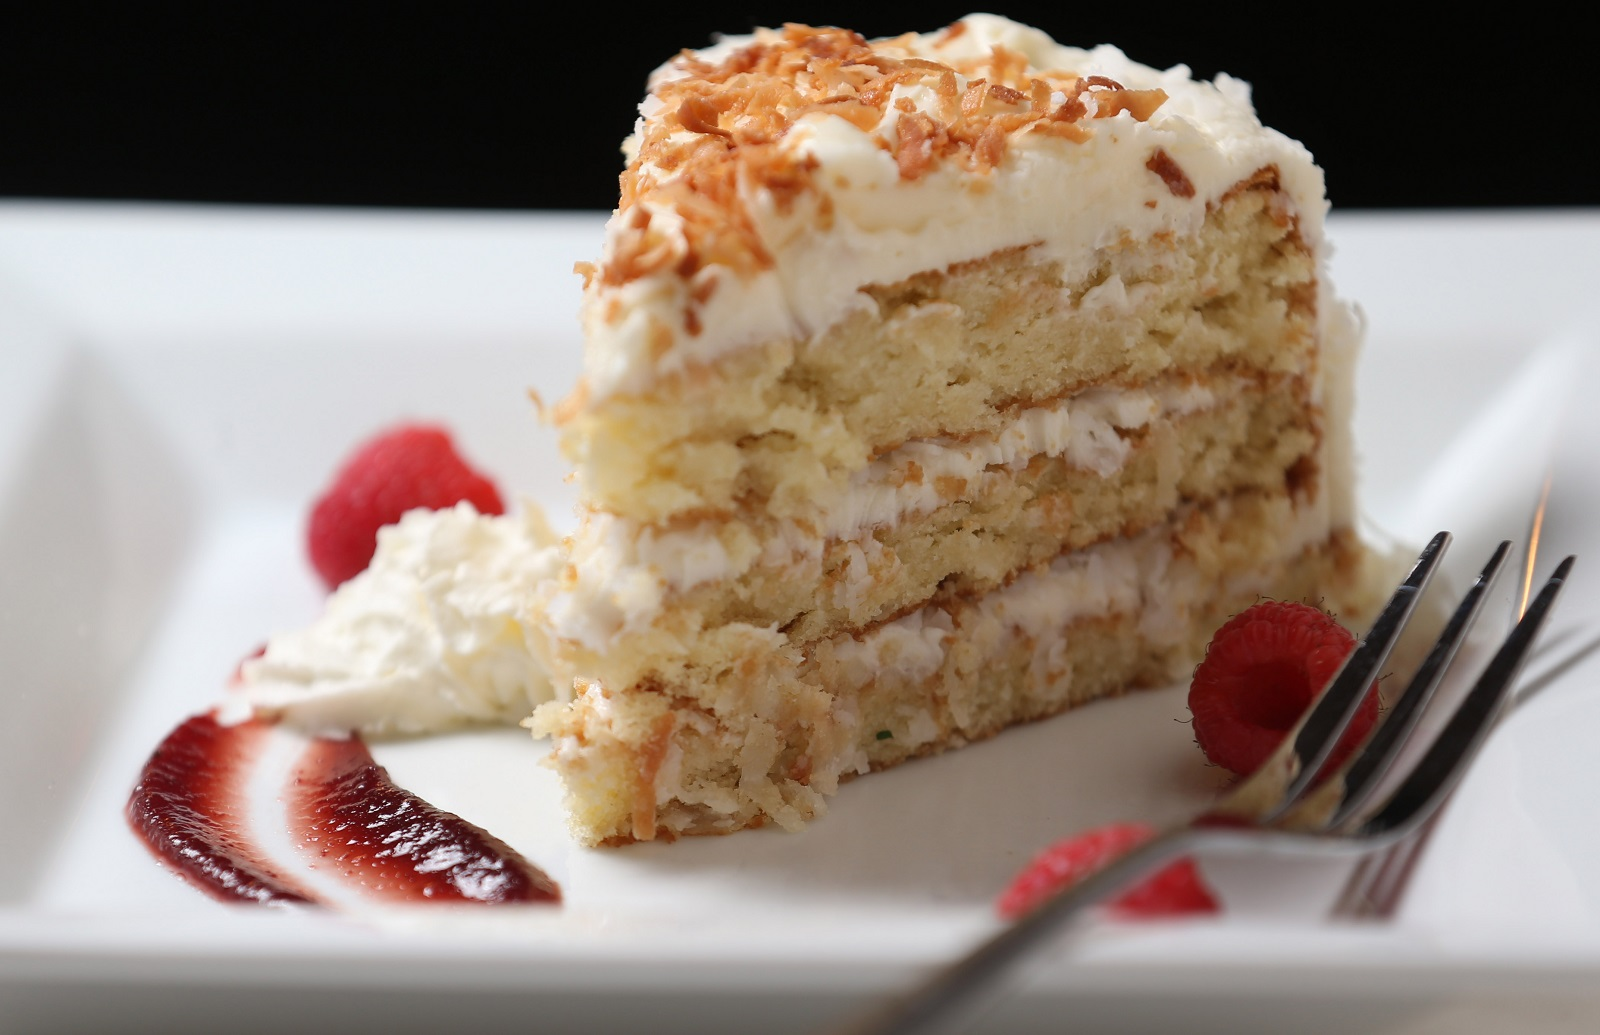 The coconut cake is topped with coconut cream frosting. (Sharon Cantillon/Buffalo News)